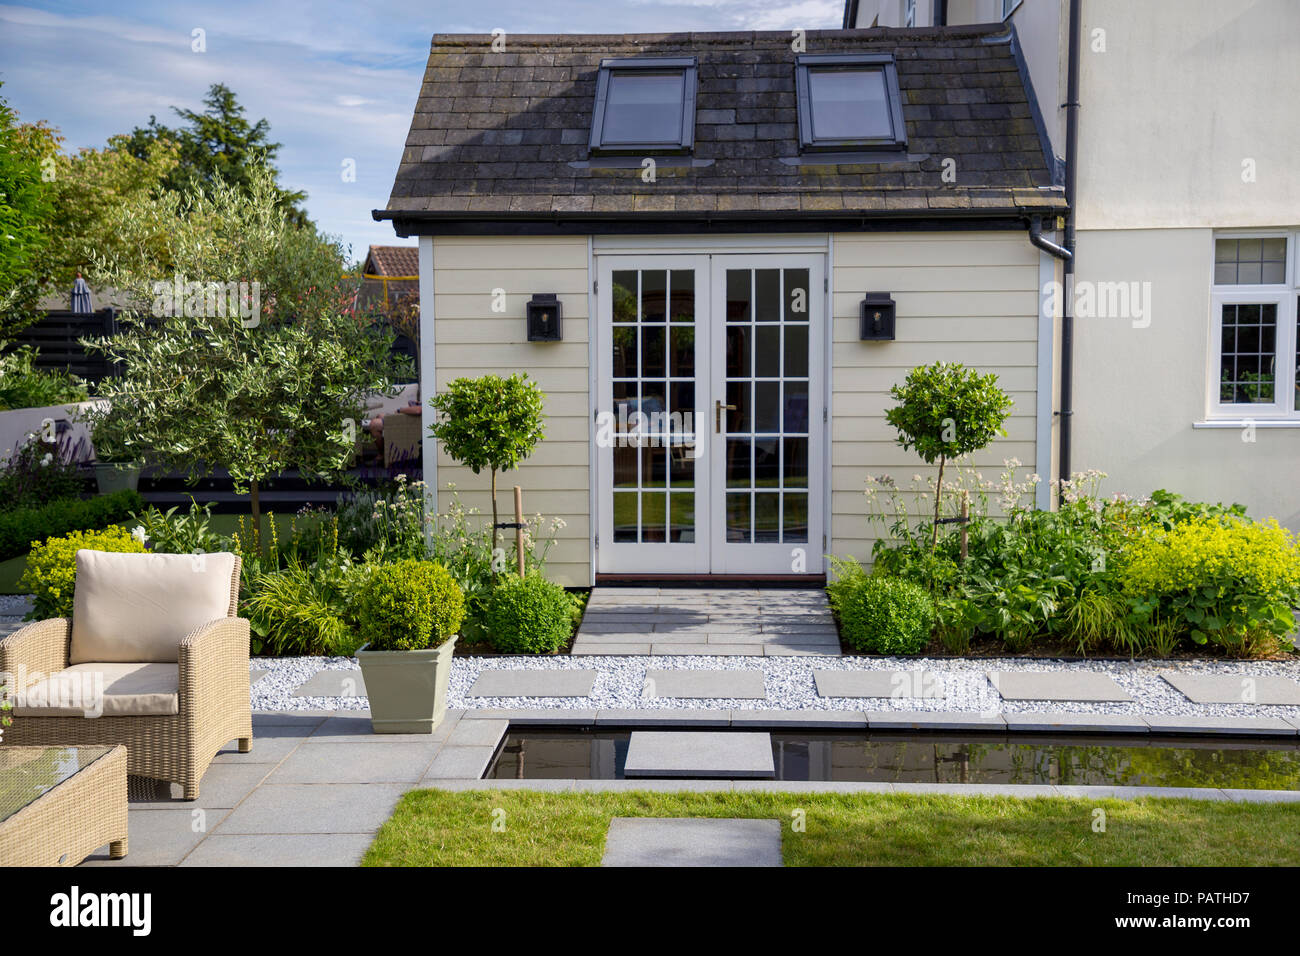 View of house exterior with herbaceous borders, Viburnum tinus topiary and London Stone granite paving - Stock Image